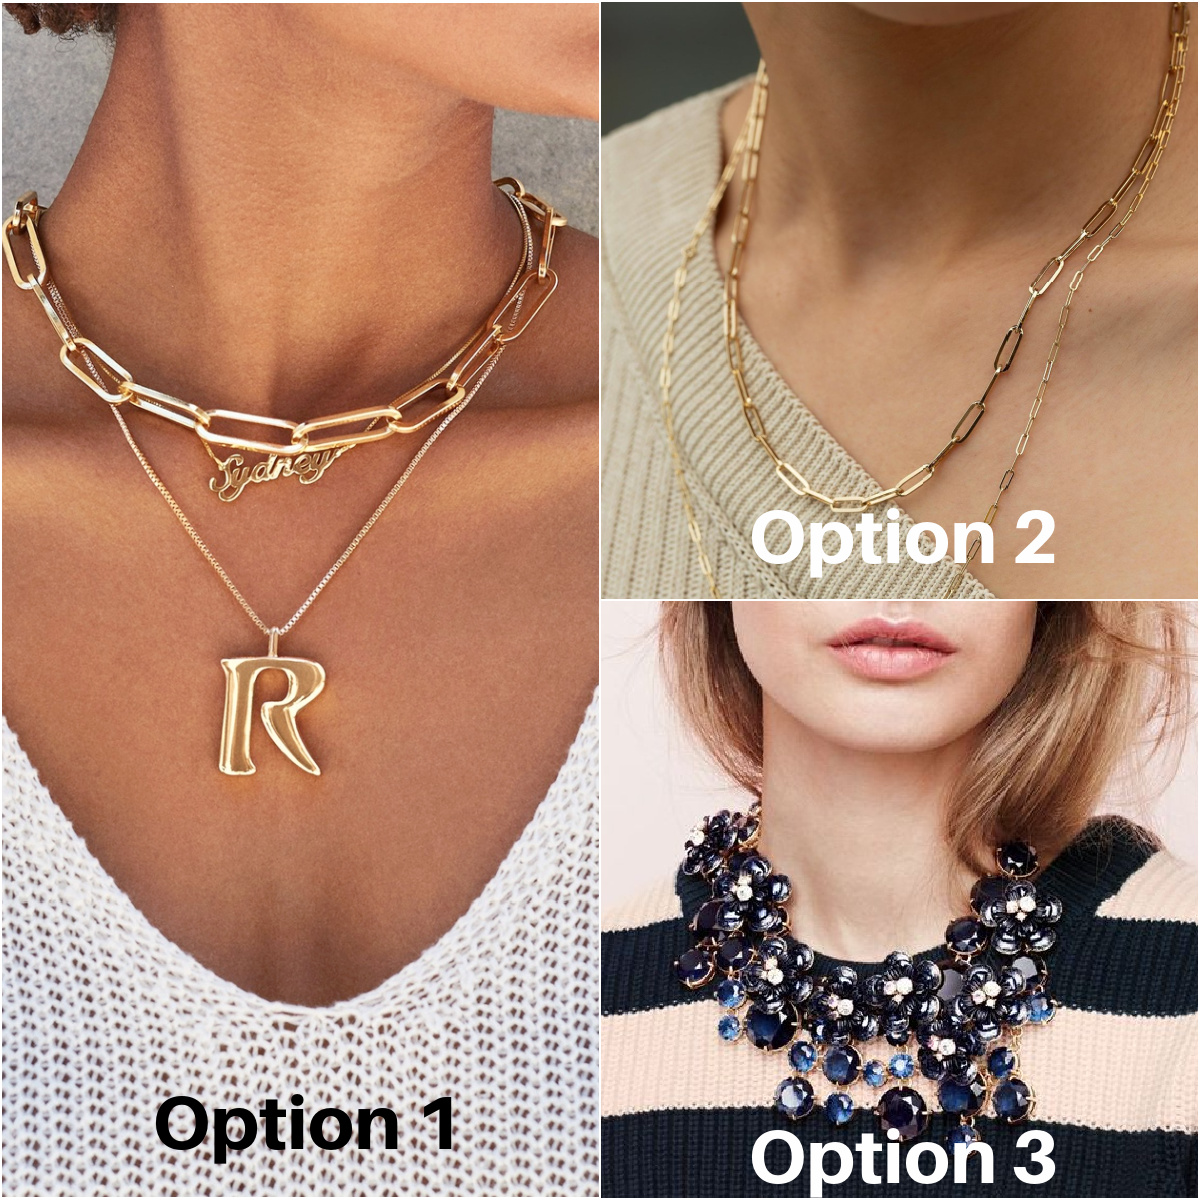 Gold Necklaces - Baublebar, AuRate, J.Crew